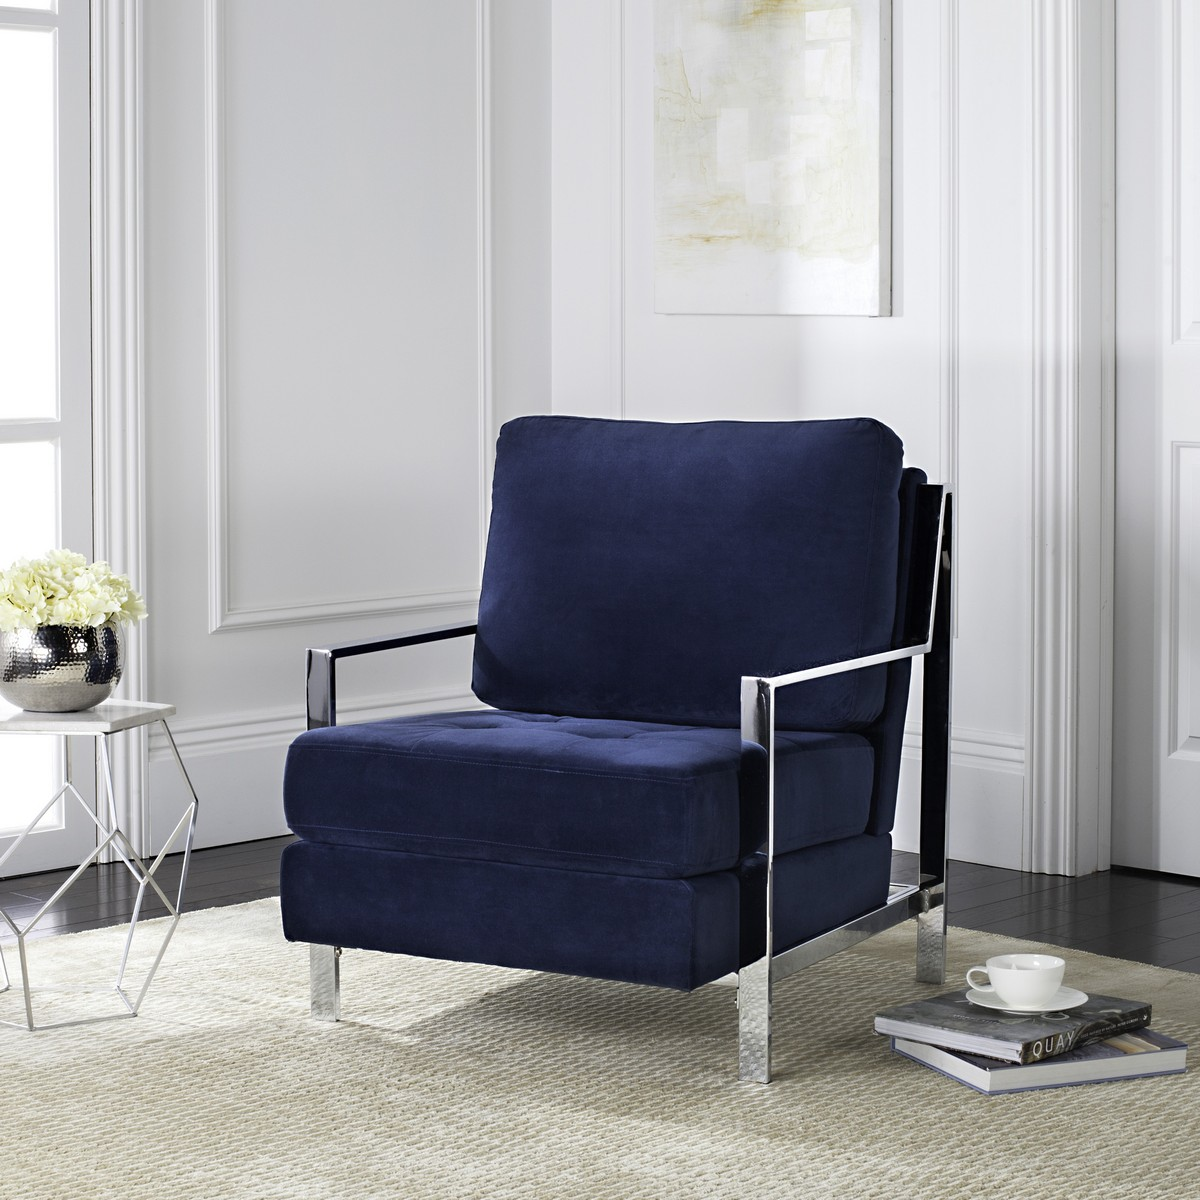 Navy blue velvet chair -  Sofa Chair Was Inspired By The Cosmopolitan Home Of London S Hottest Actor The Clean Lines Of Its Shimmering Metallic Frame Are Paired With Navy Velvet